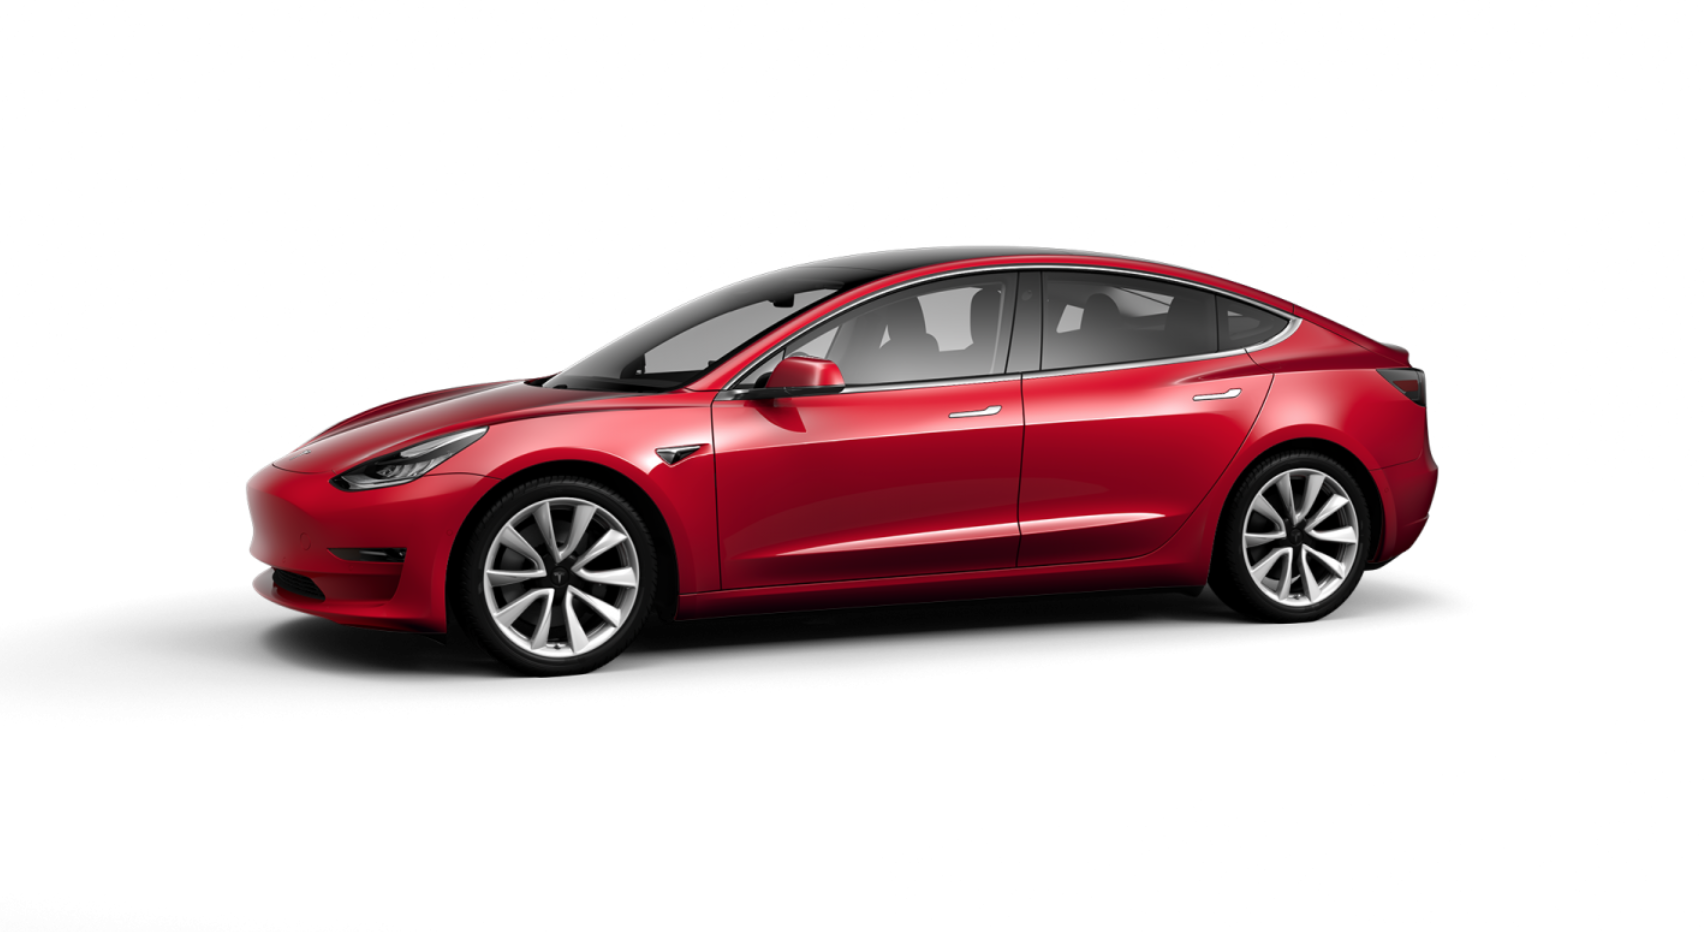 There S A New Lower Price Tesla Model 3 But It Still Not The 35 000 One